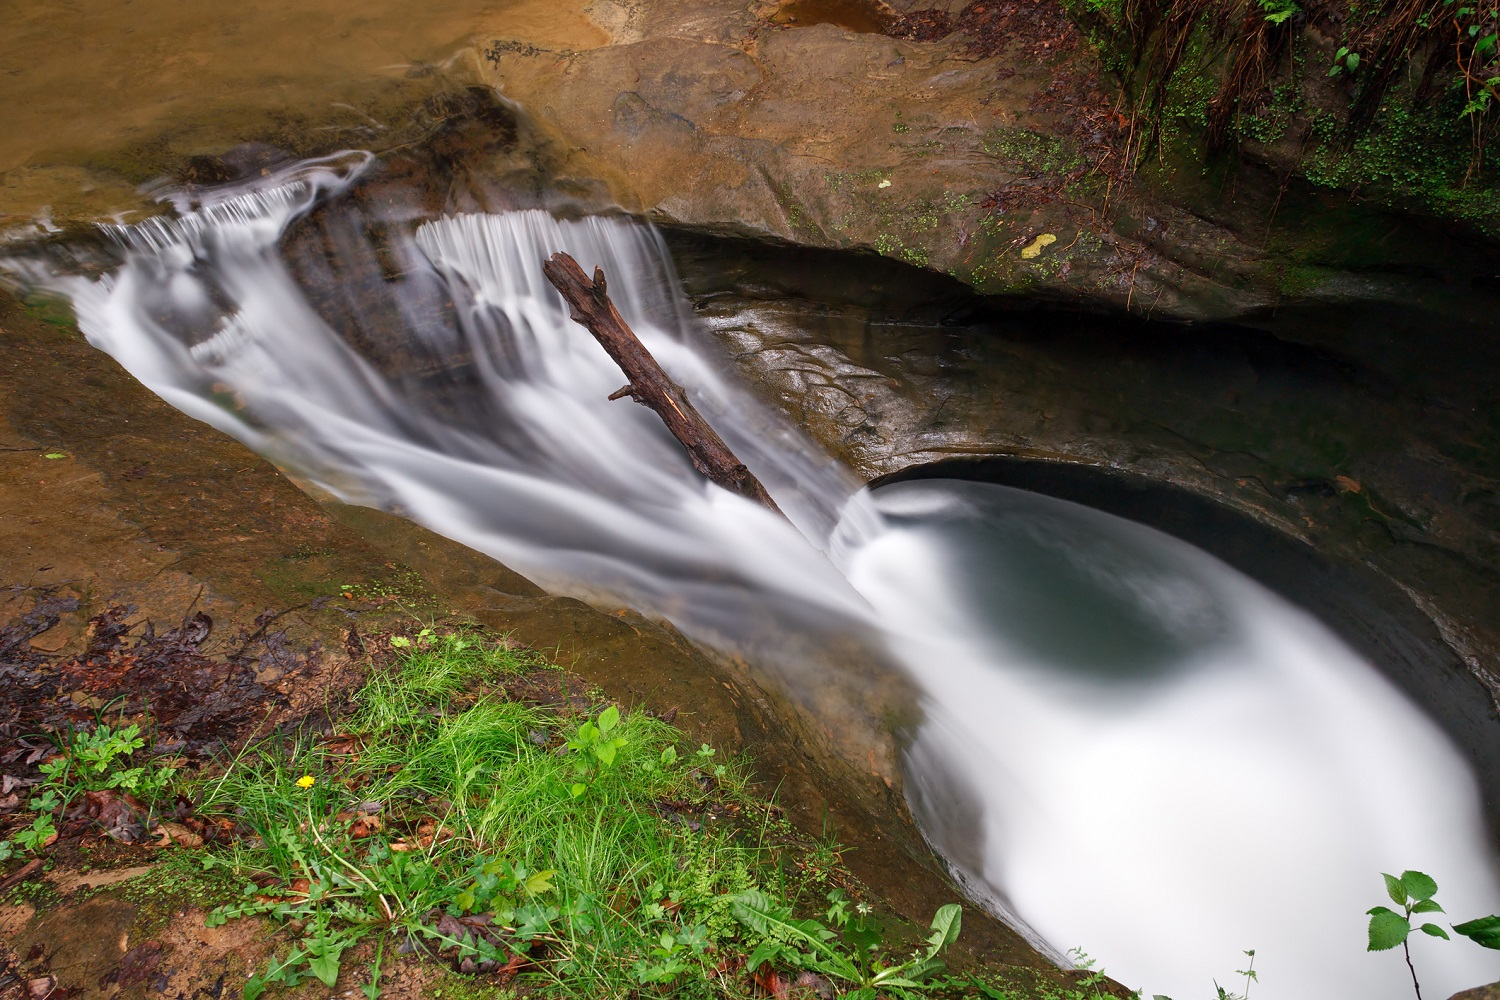 cedar falls catholic single men Complete information about the hocking hills ohio region holiday gifts for someone special hocking  cedar falls itself is the greatest waterfall in terms of.